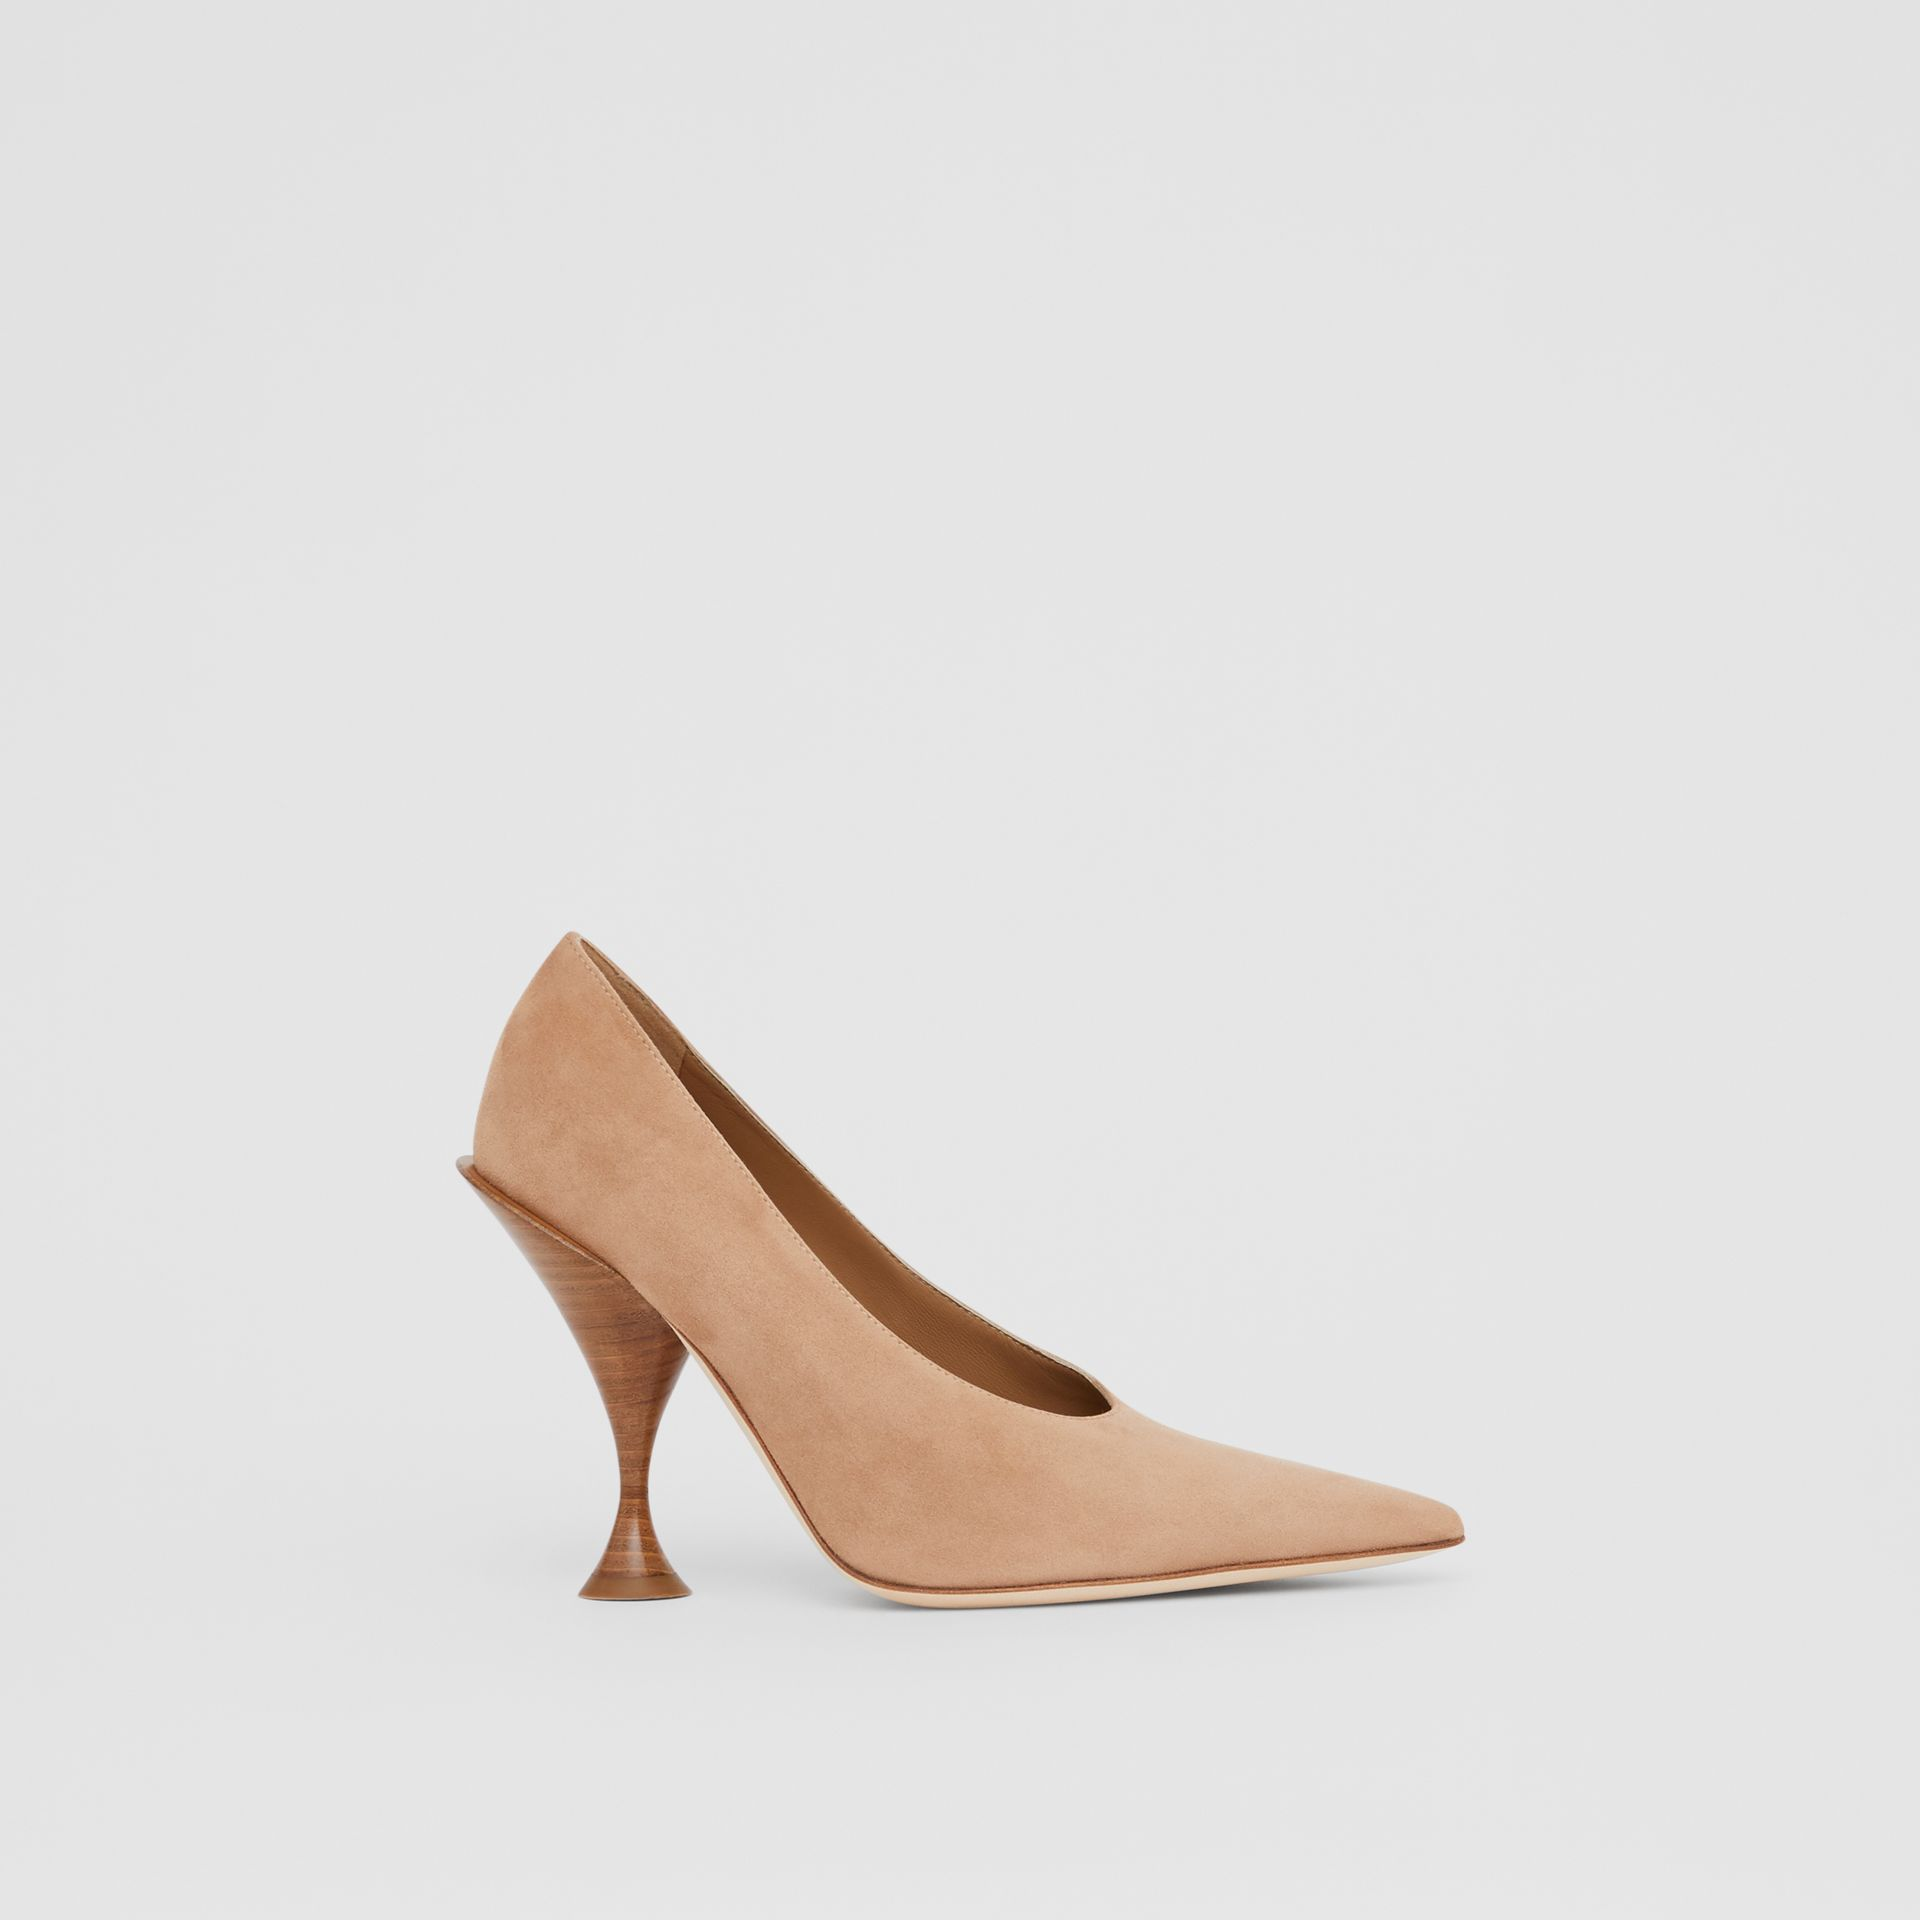 Suede Point-toe Pumps in Warm Camel - Women | Burberry - gallery image 4